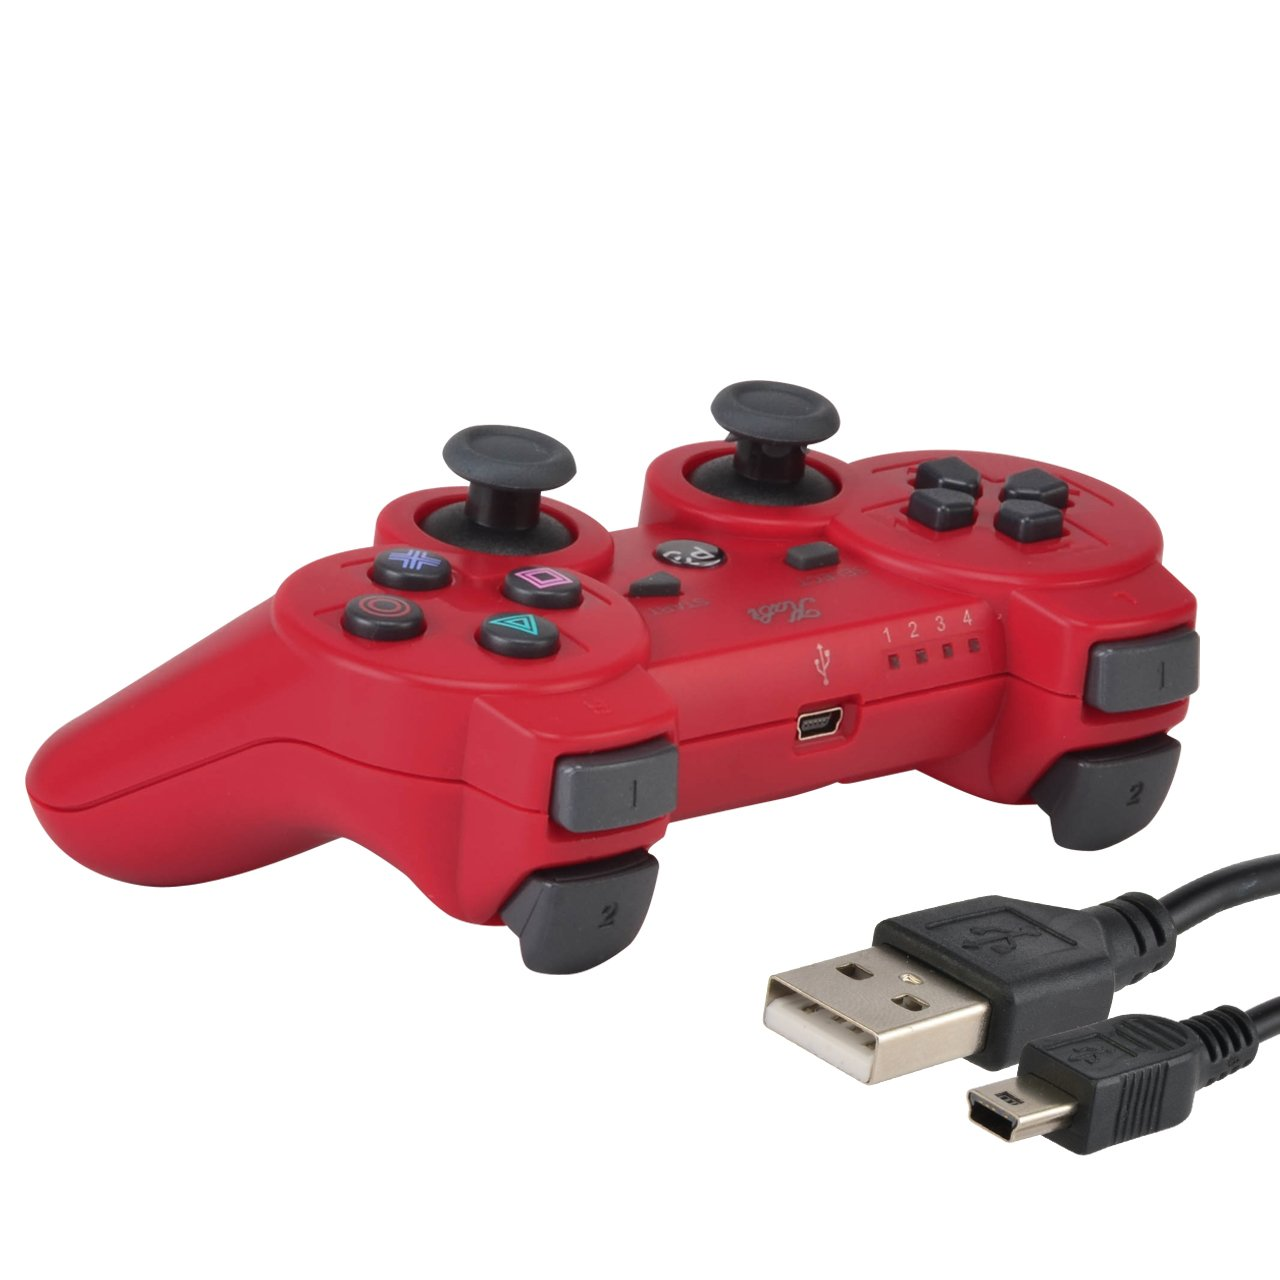 Mando inalámbrico de Kabi, Double Shock Game, 6 ejes, bluetooth, incluye cargador, para Play Station 3, rojo: Amazon.es: Deportes y aire libre